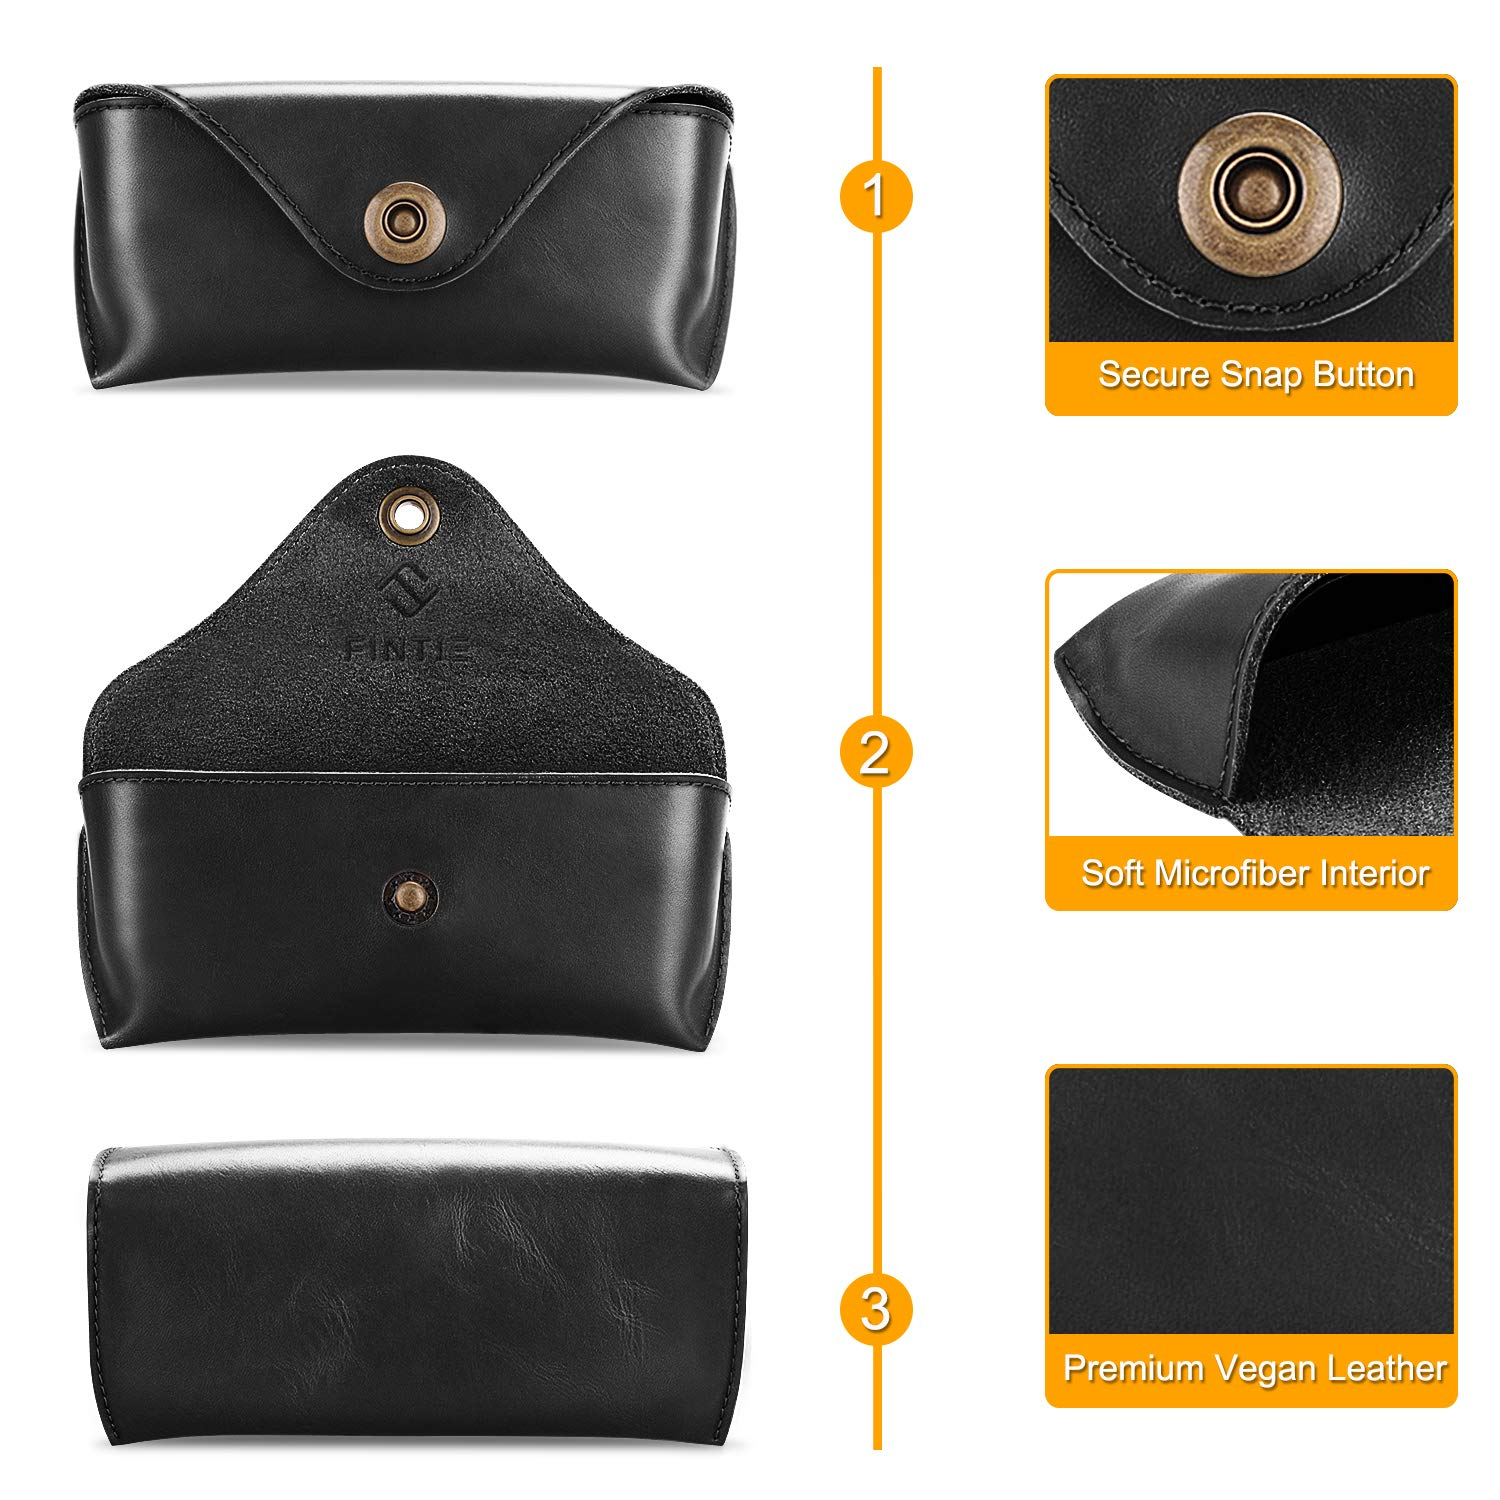 Fintie Portable Sunglasses Case, Semi-Hard Vegan Leather Glasses Carrying Case Eyewear Pouch with Snap Button Closure by Fintie (Image #3)